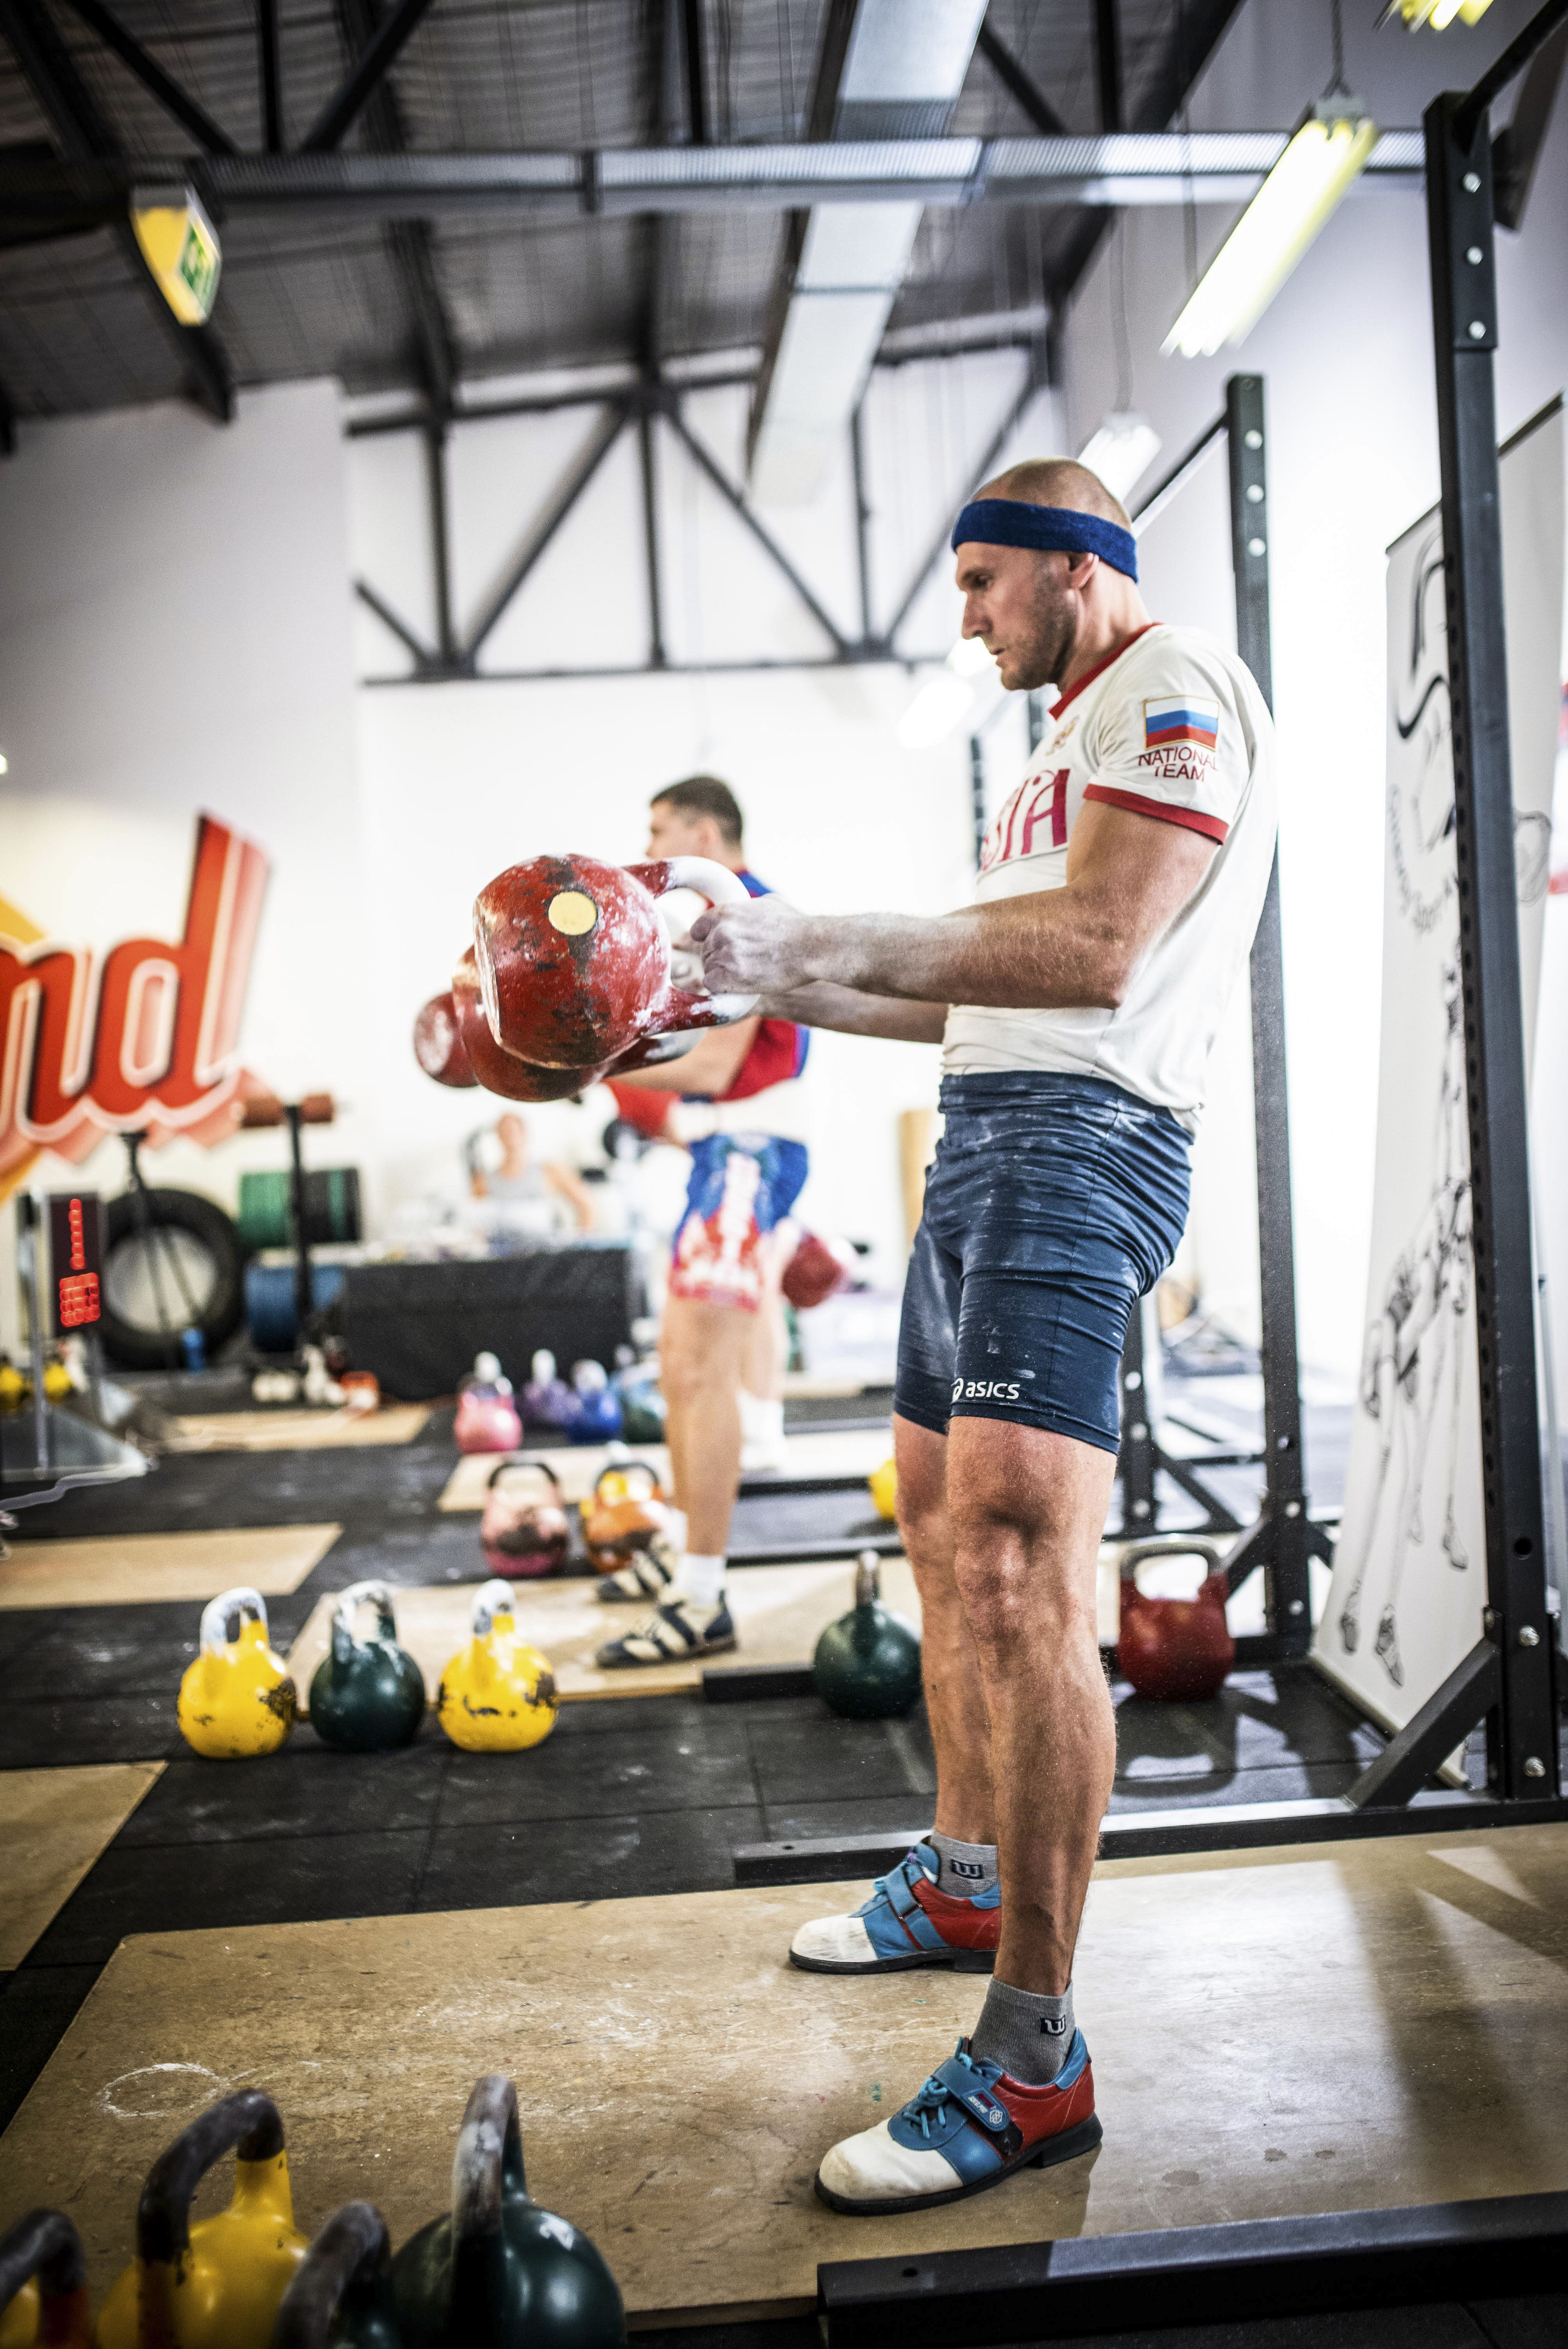 Hell's Bells: Welcome to the Kettlebell World Cup